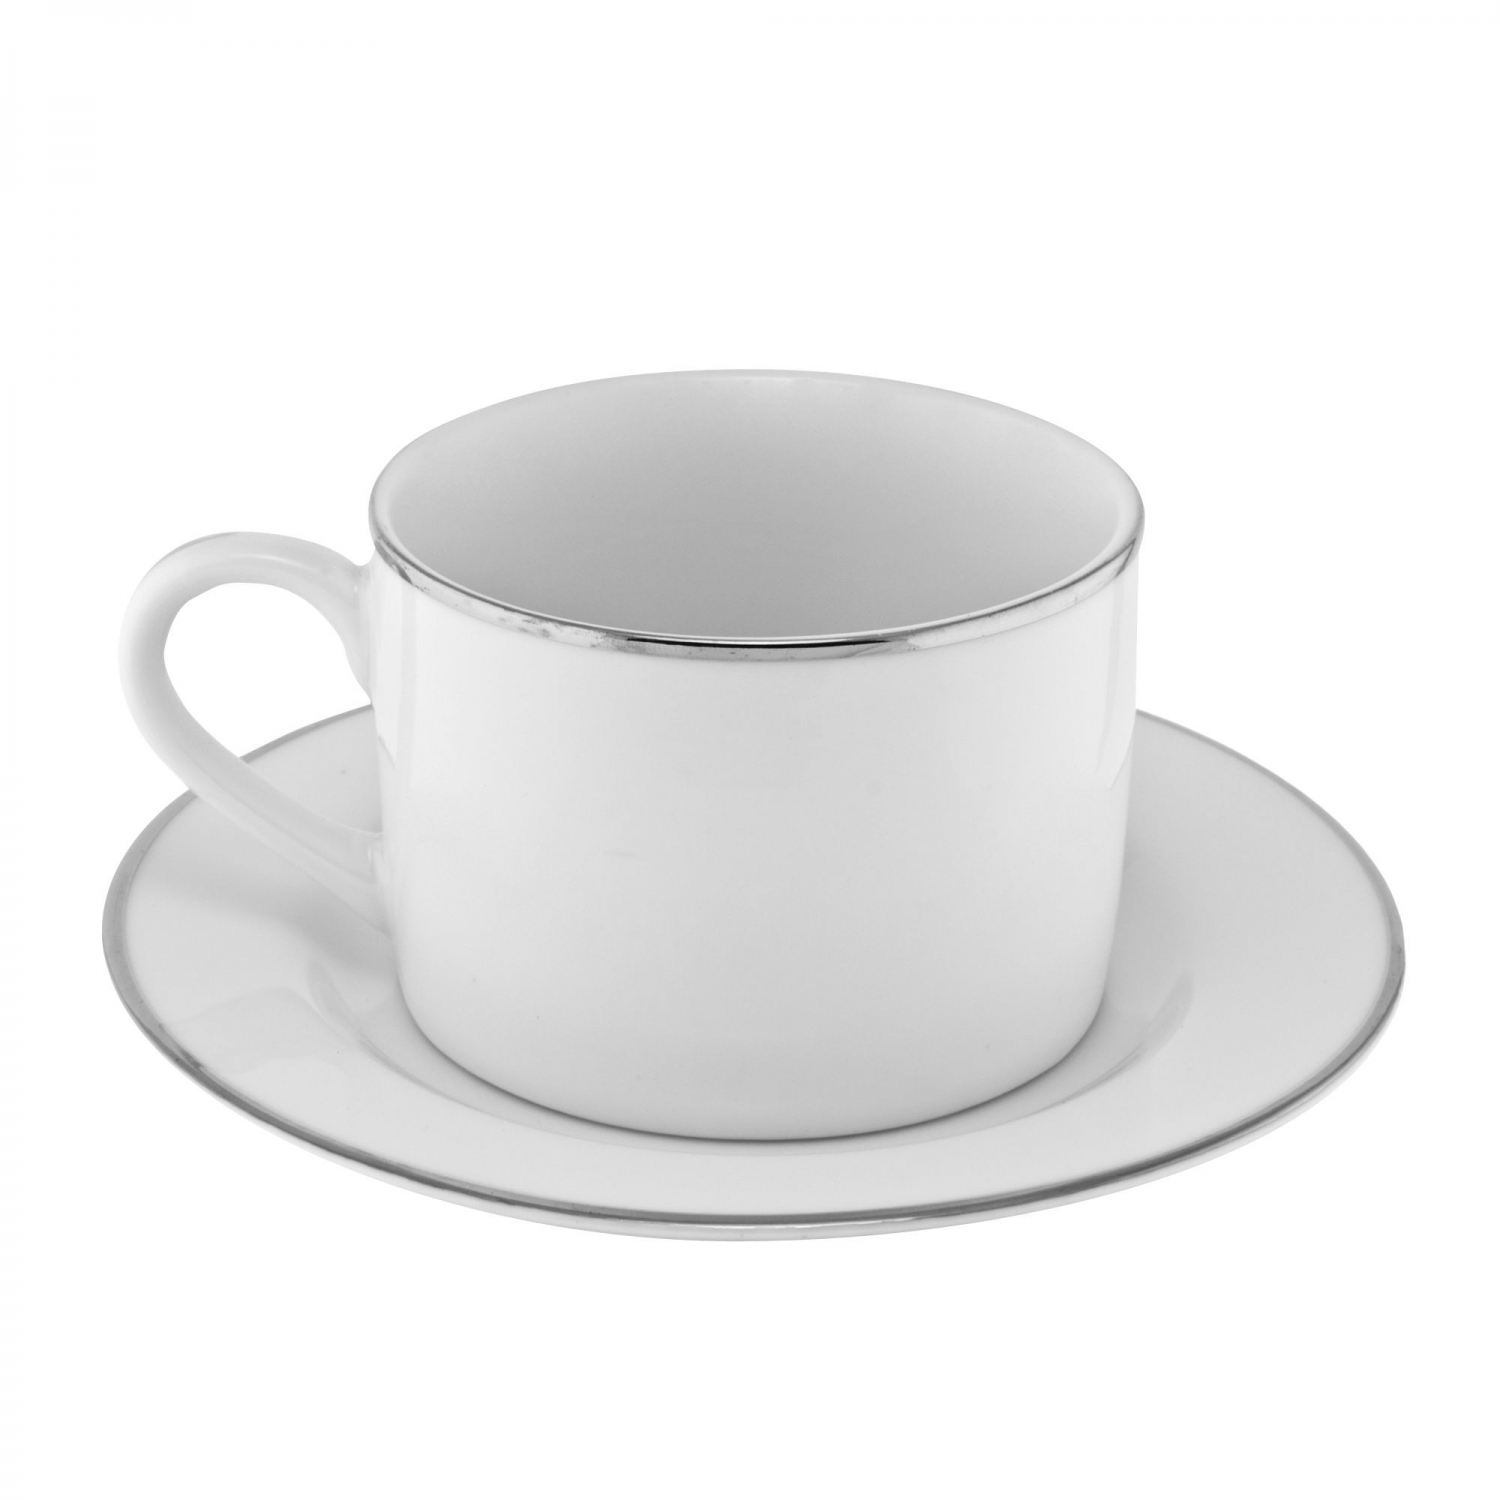 10 Strawberry Street SL0009 Silver Line Can Cup and Saucer 6 oz.